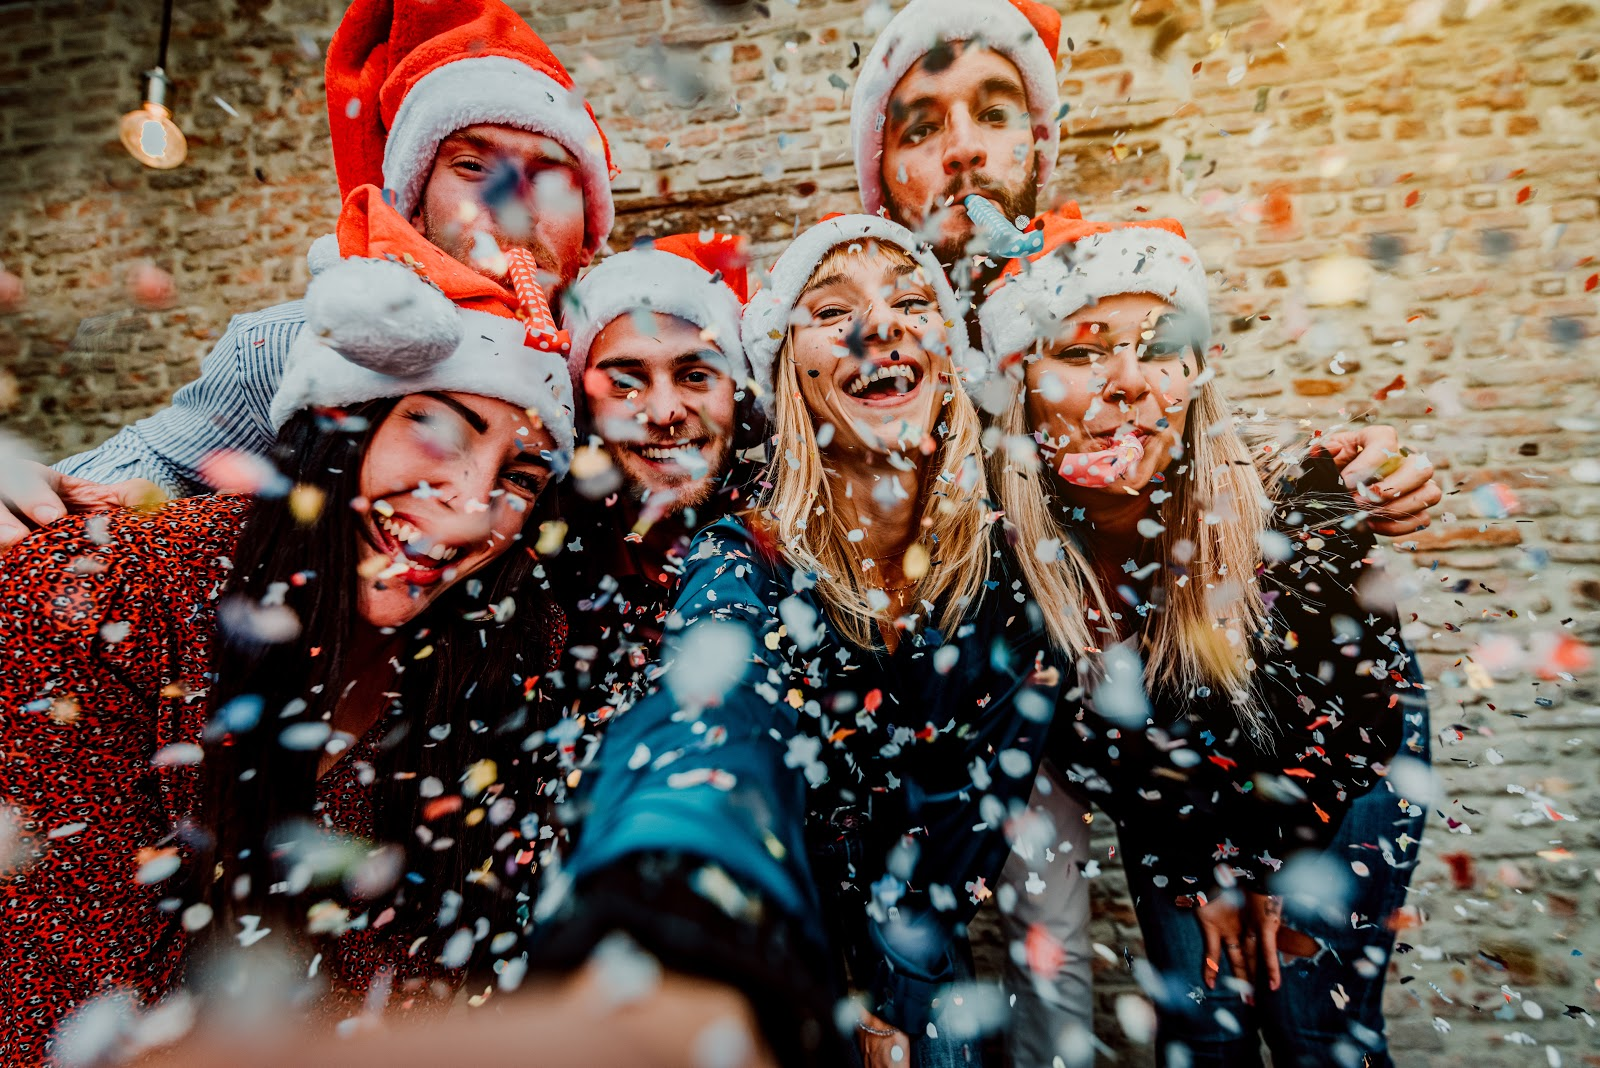 text message invitations: Group of friends wearing Santa hats taking a photo while surrounded by confetti